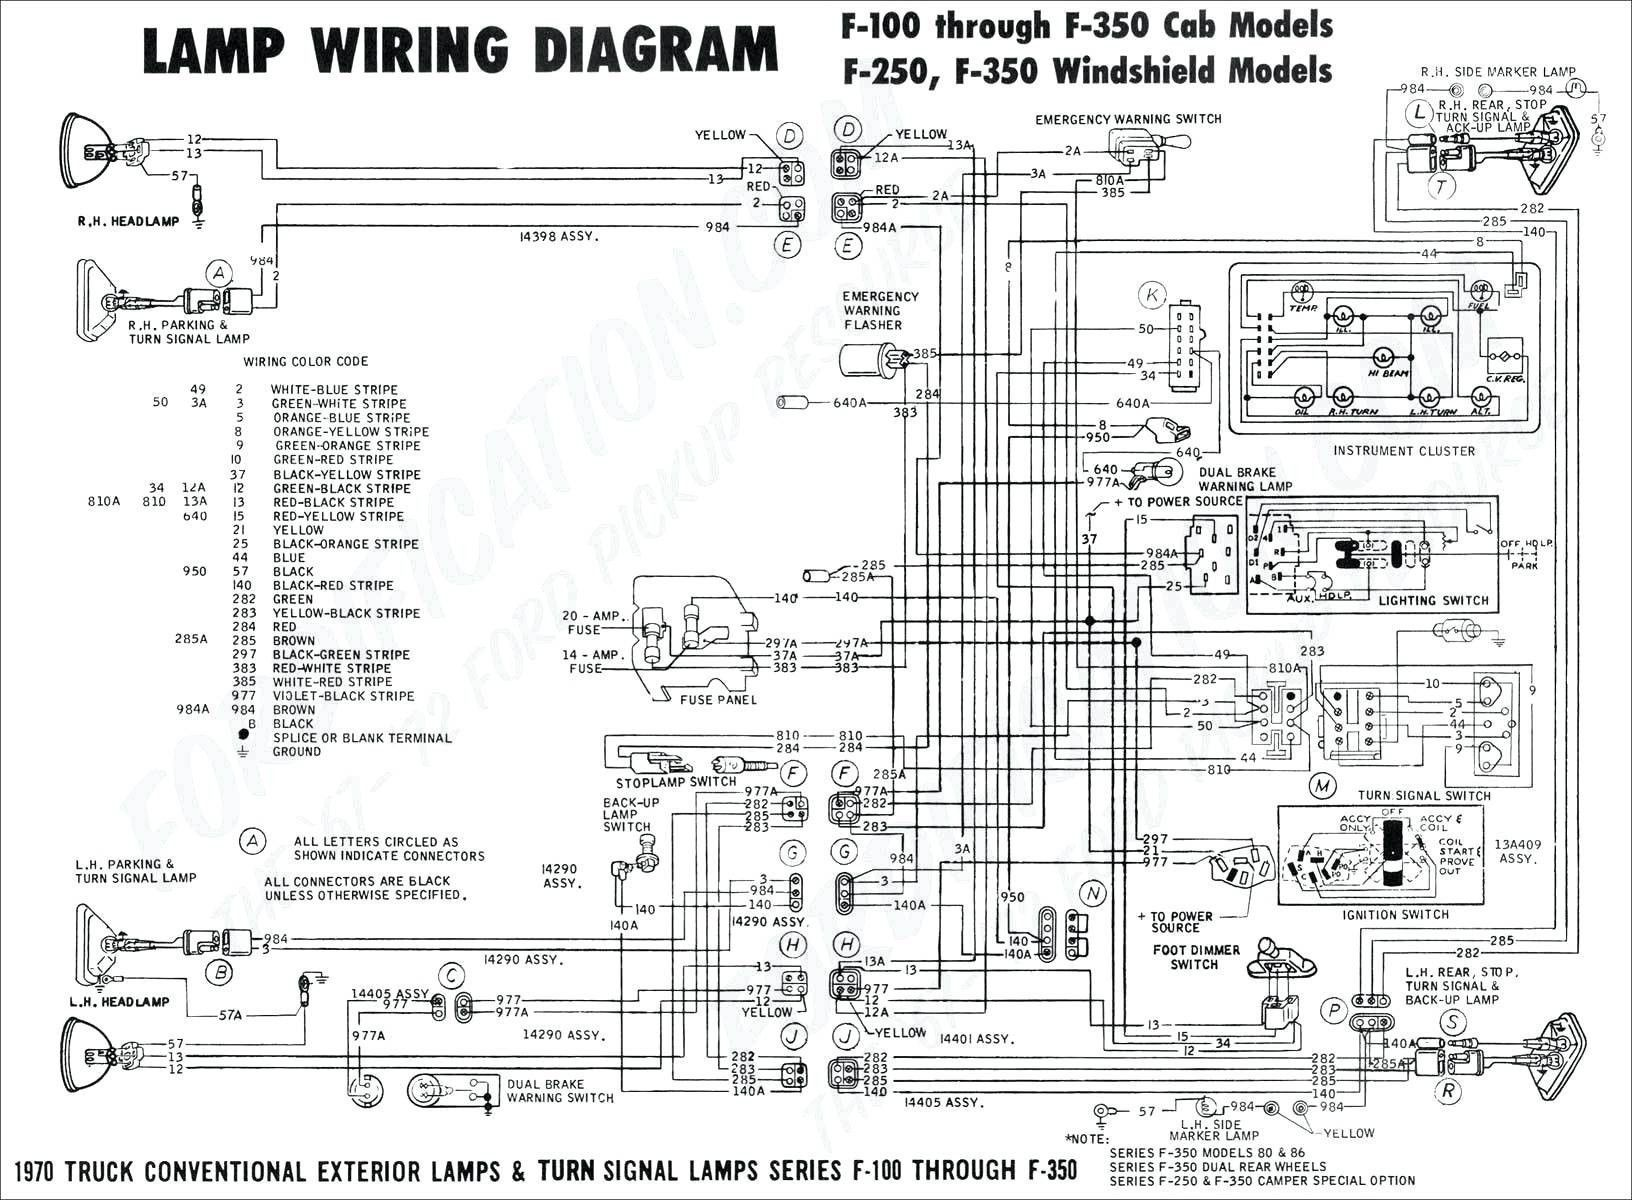 Elegant 2003 Mitsubishi Eclipse Wiring Diagram In 2020 Electrical Wiring Diagram Trailer Wiring Diagram Diagram